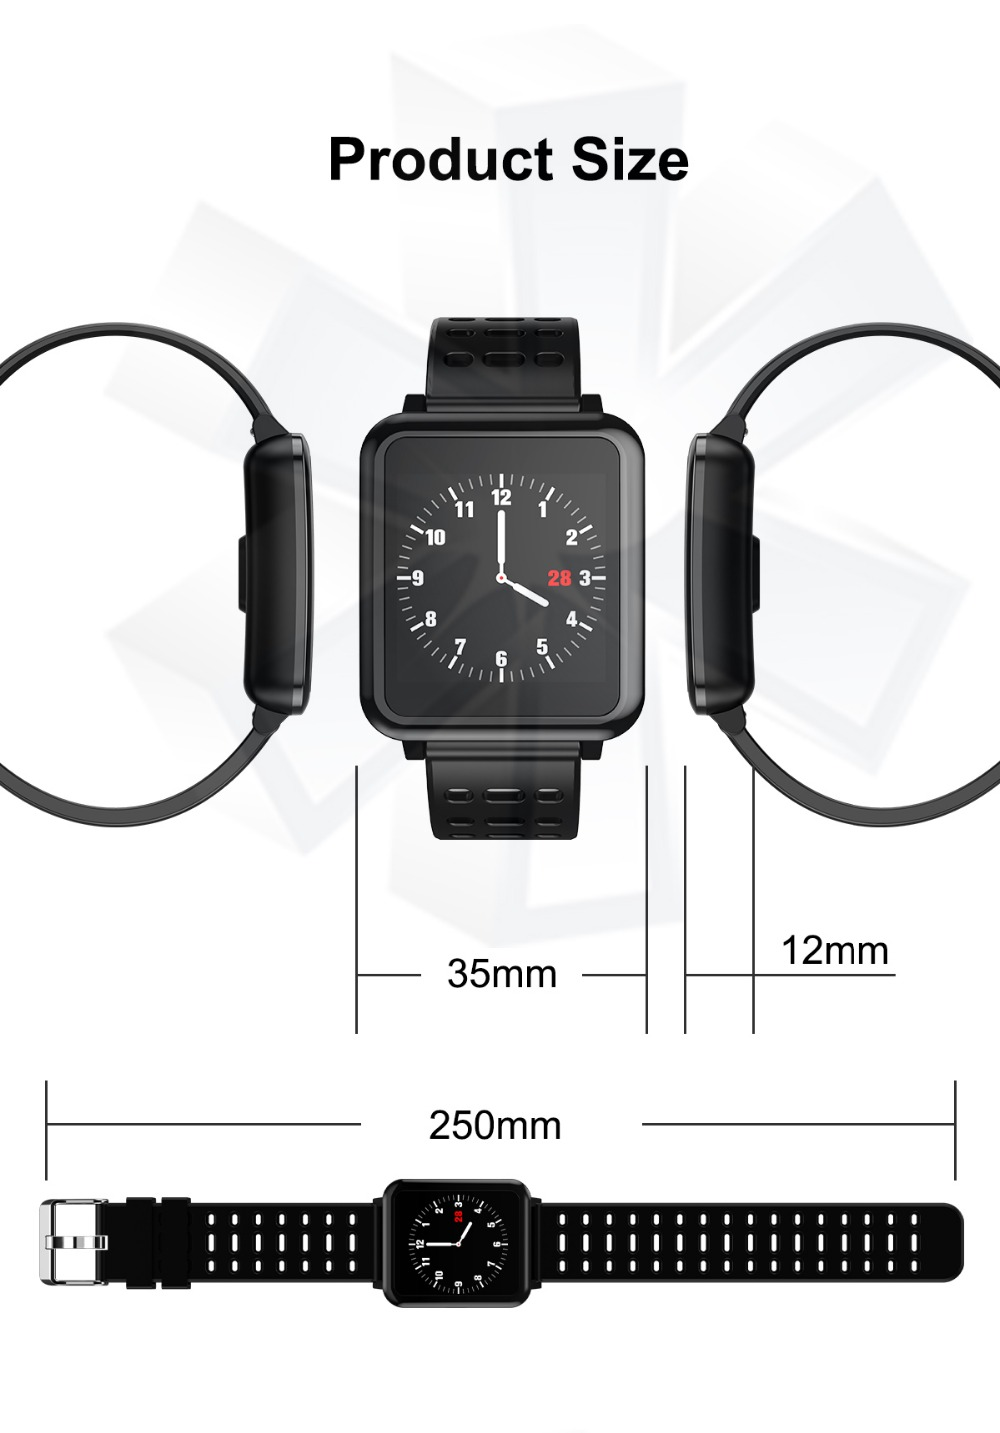 T2 Smartwatch IP67 Waterproof Wearable Device Bluetooth Pedometer Heart Rate Monitor Color Display Smart Watch For AndroidIOS (16)